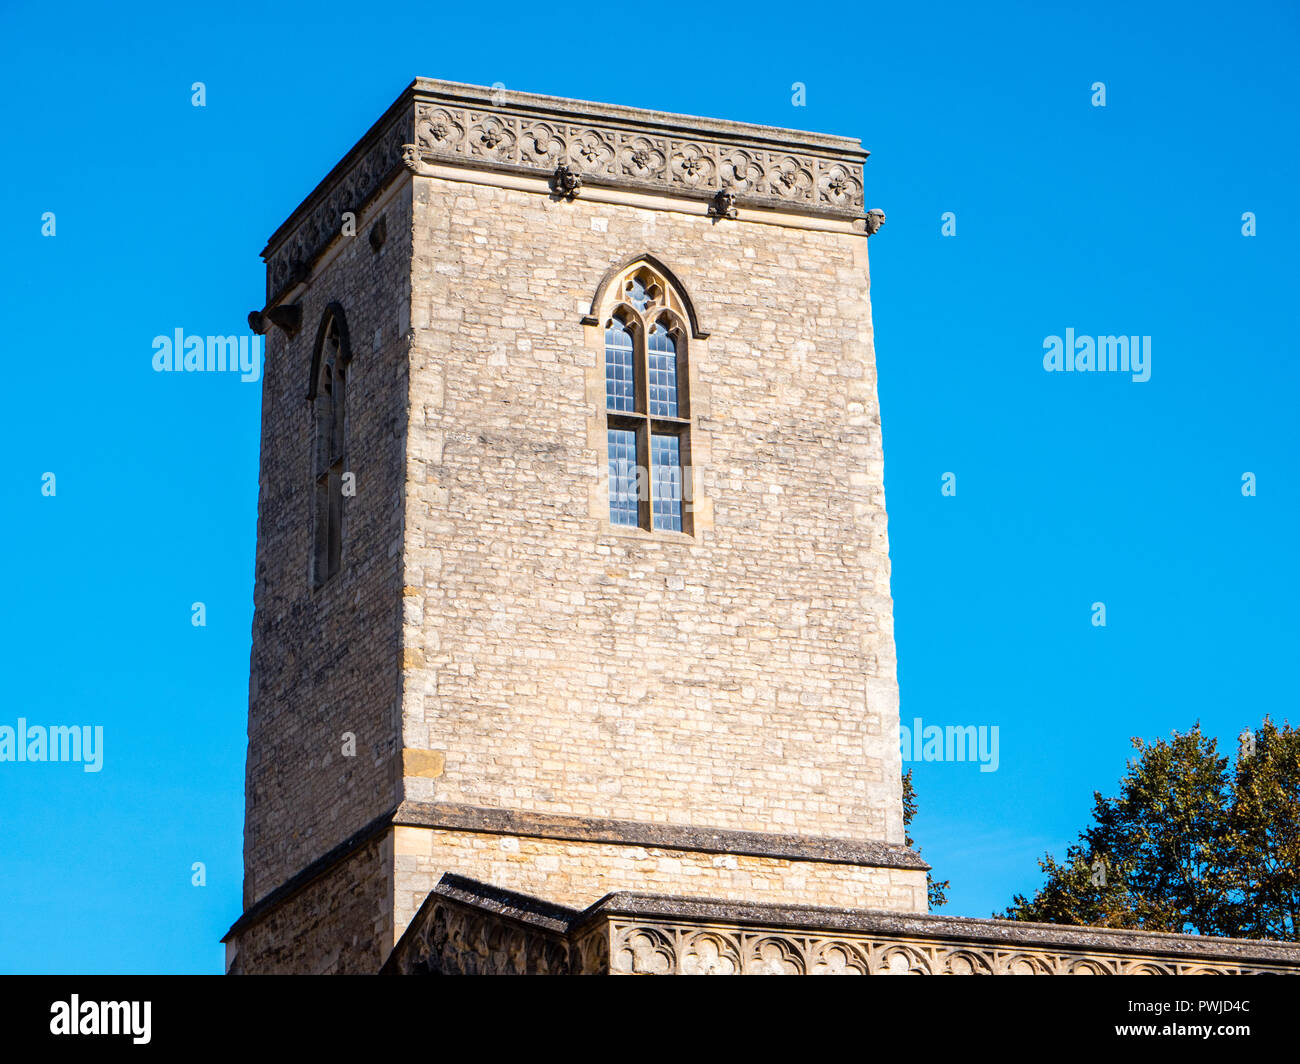 st Edmunds Hall Library, Tower, 12th-century church of St Peter-in-the-East, St Edmunds Hall, Oxford, Oxfordshire, England, UK, GB. - Stock Image